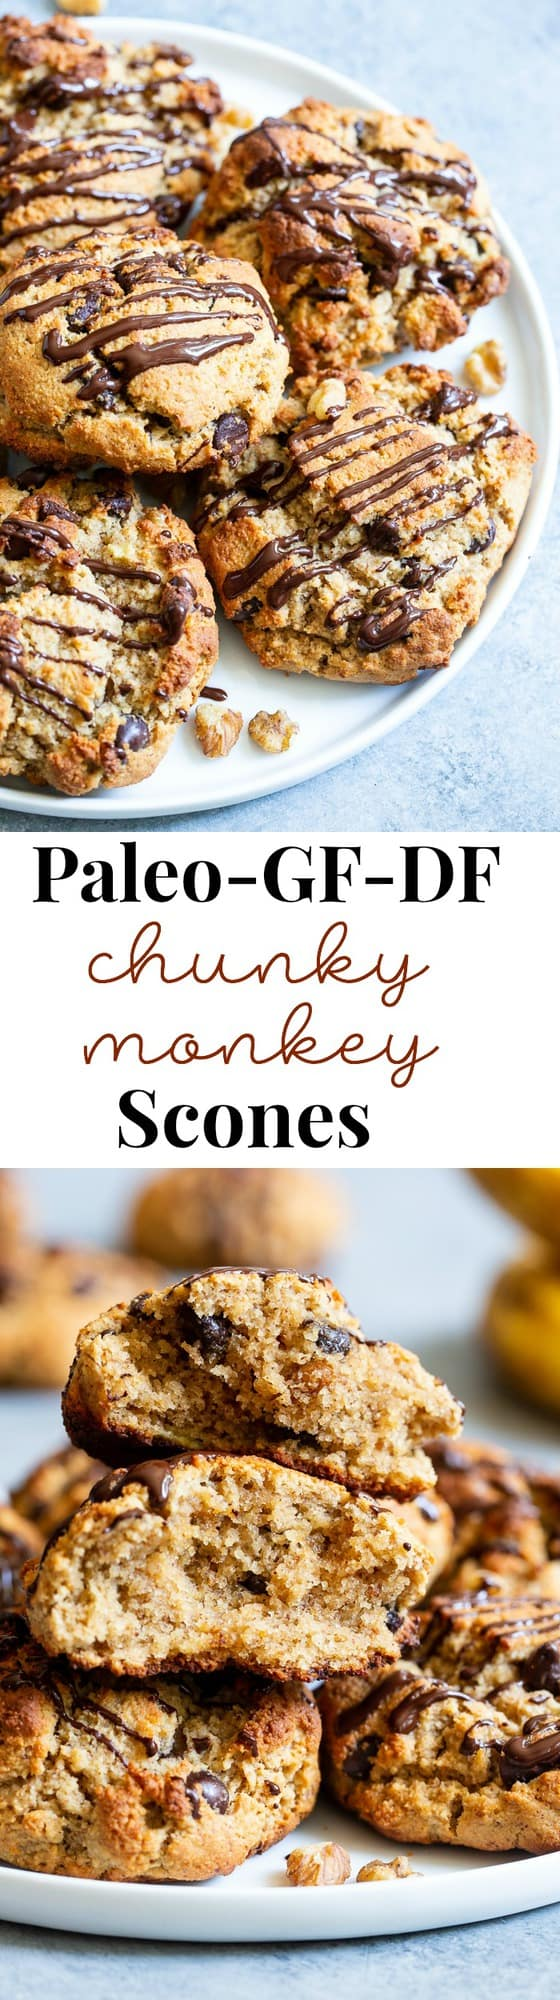 These easy chunky monkey scones are so ridiculously delicious that you won't believe they're grain free, dairy free and paleo!  The winning combination of bananas, nut butter, chopped nuts and chocolate is somehow even better in scone form!  Great for brunches, snacks and even dessert, the soft inside and crisp outside will quickly get you addicted!